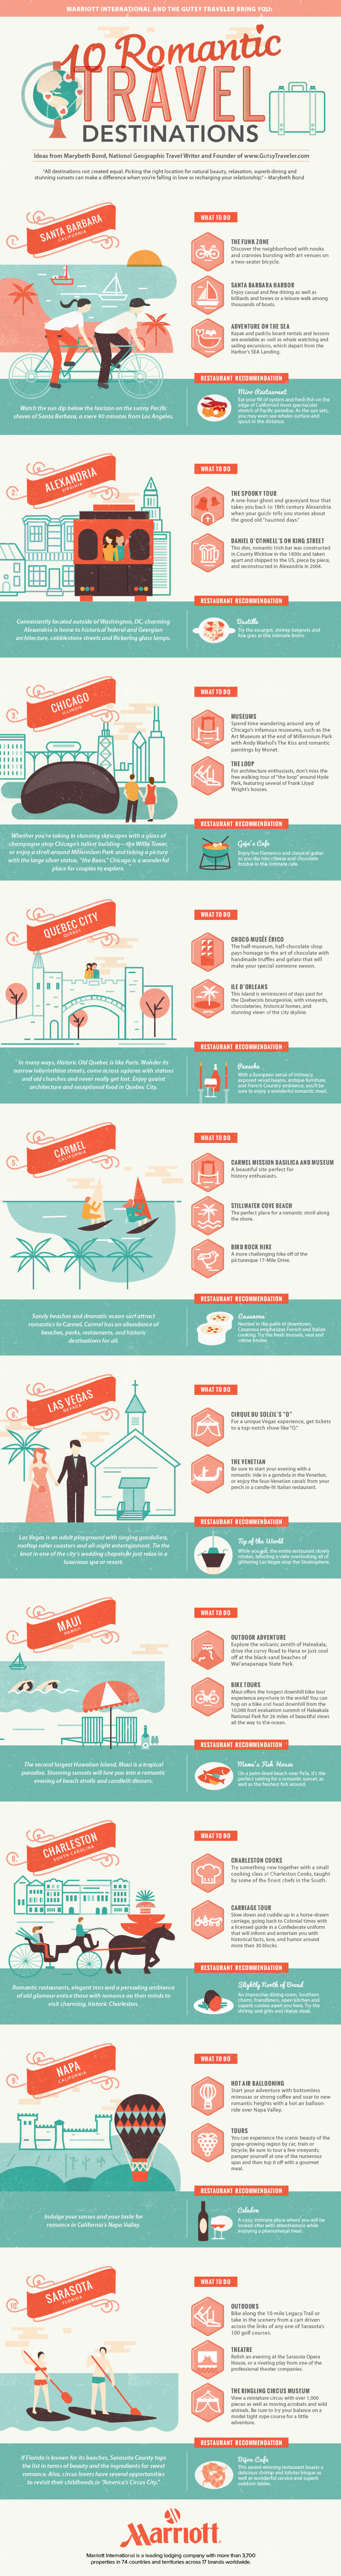 Infographic top 10 romantic travel destinations for for Top 10 vacation spots couples